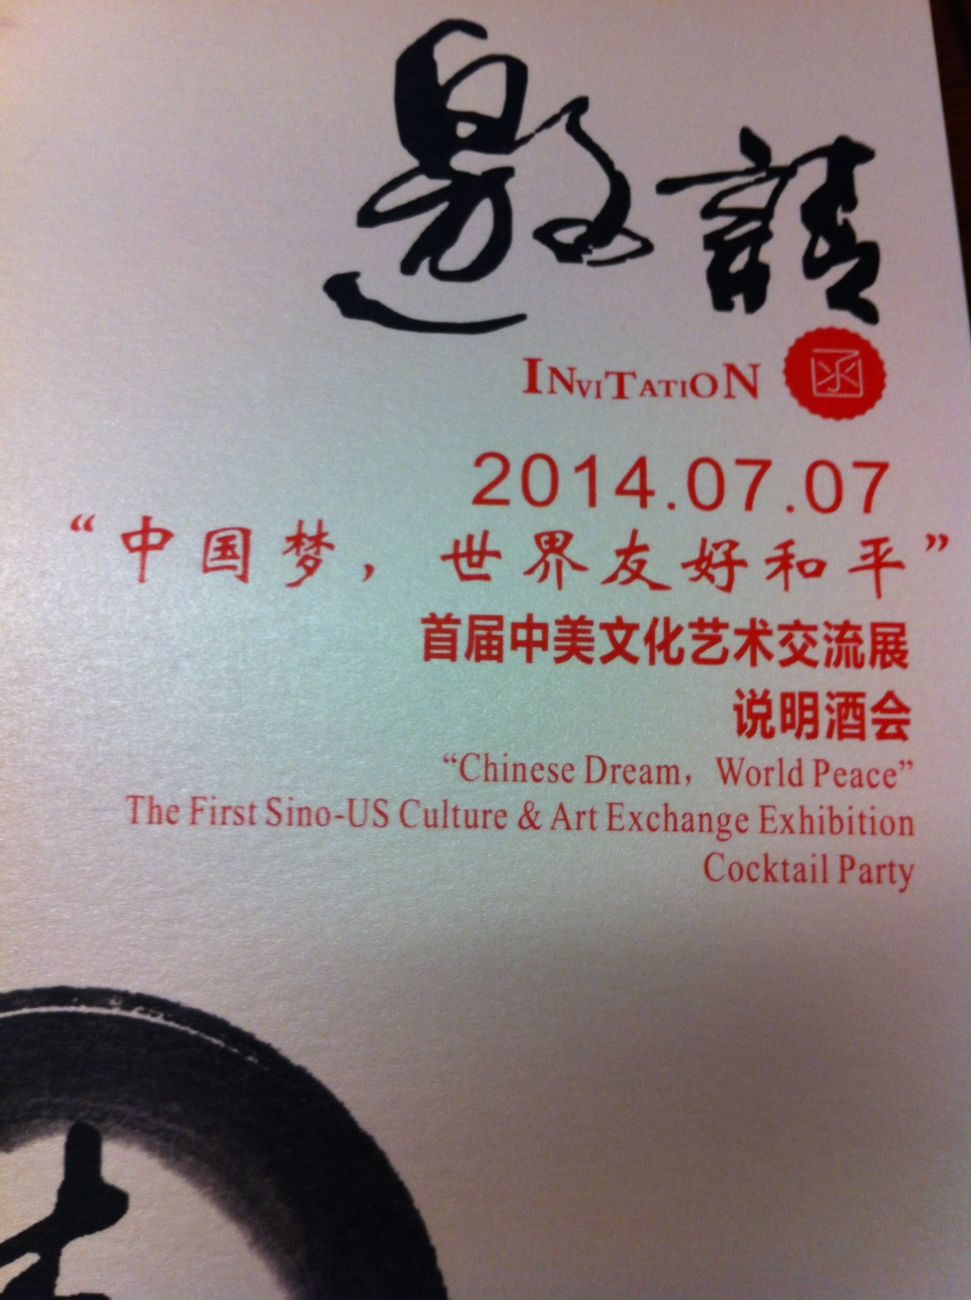 The First Sino-US Culture & Art Exchange Cocktail Party